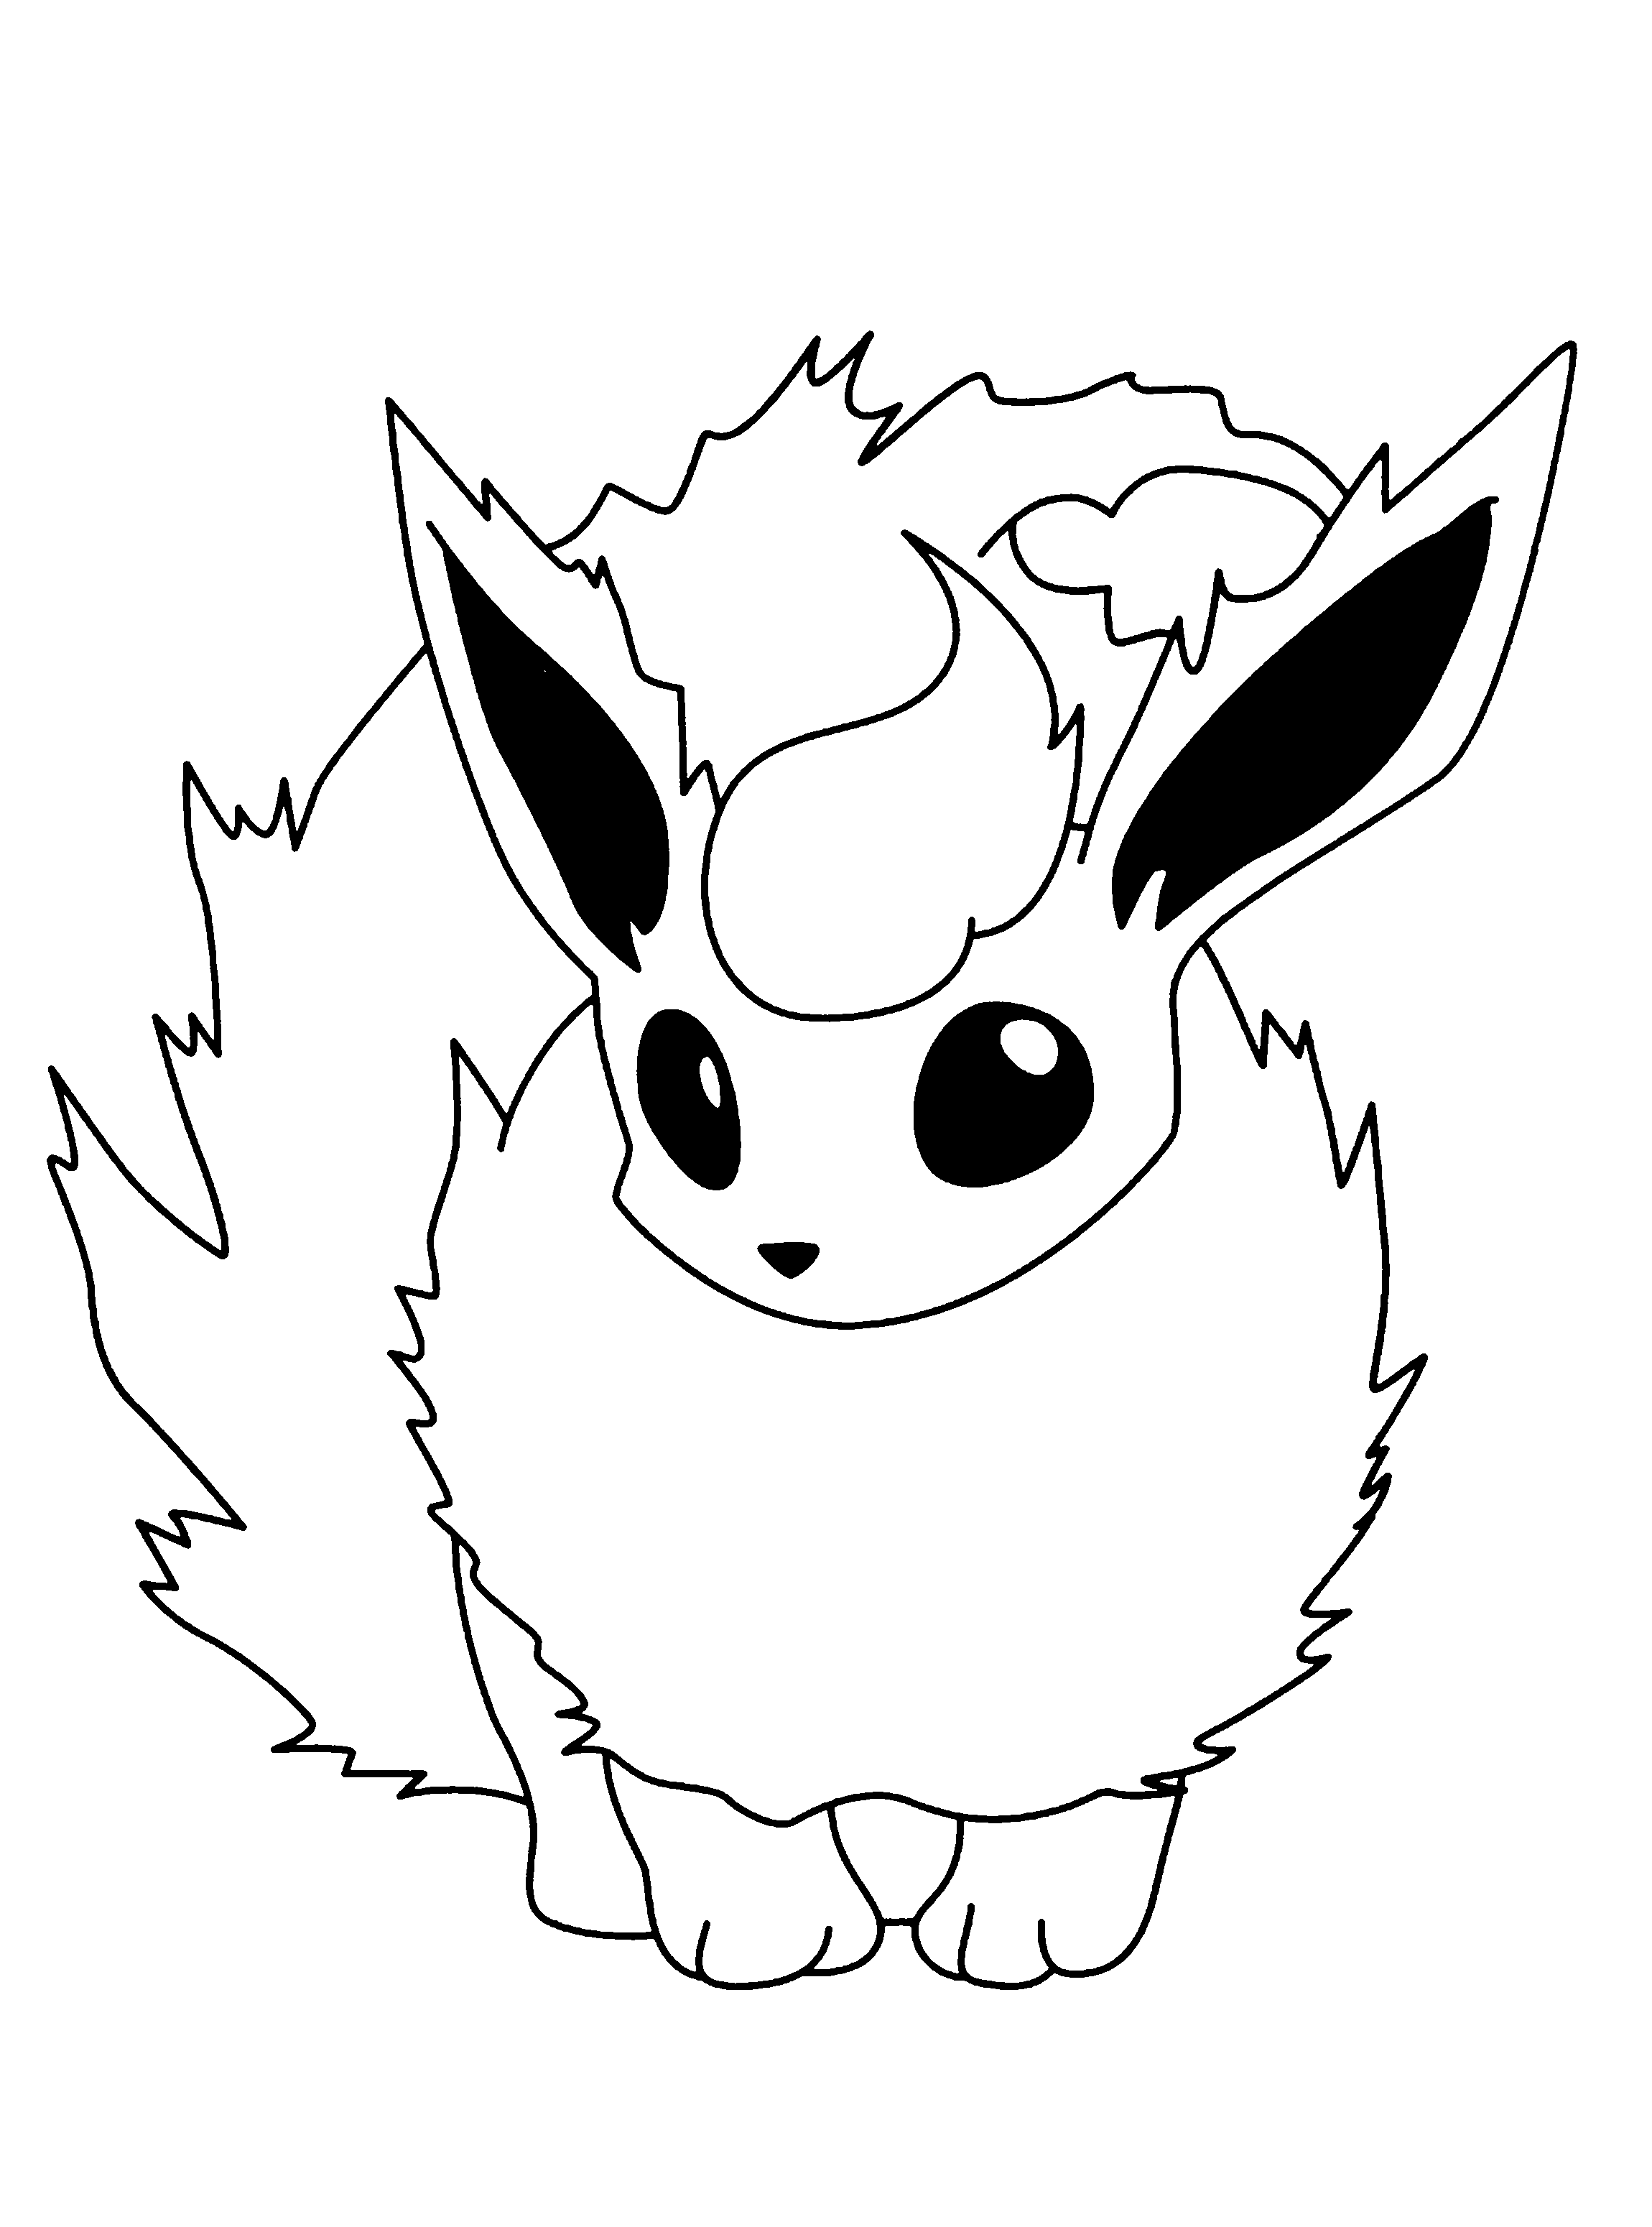 pokeman coloring pages all pokemon coloring pages download and print for free pages coloring pokeman